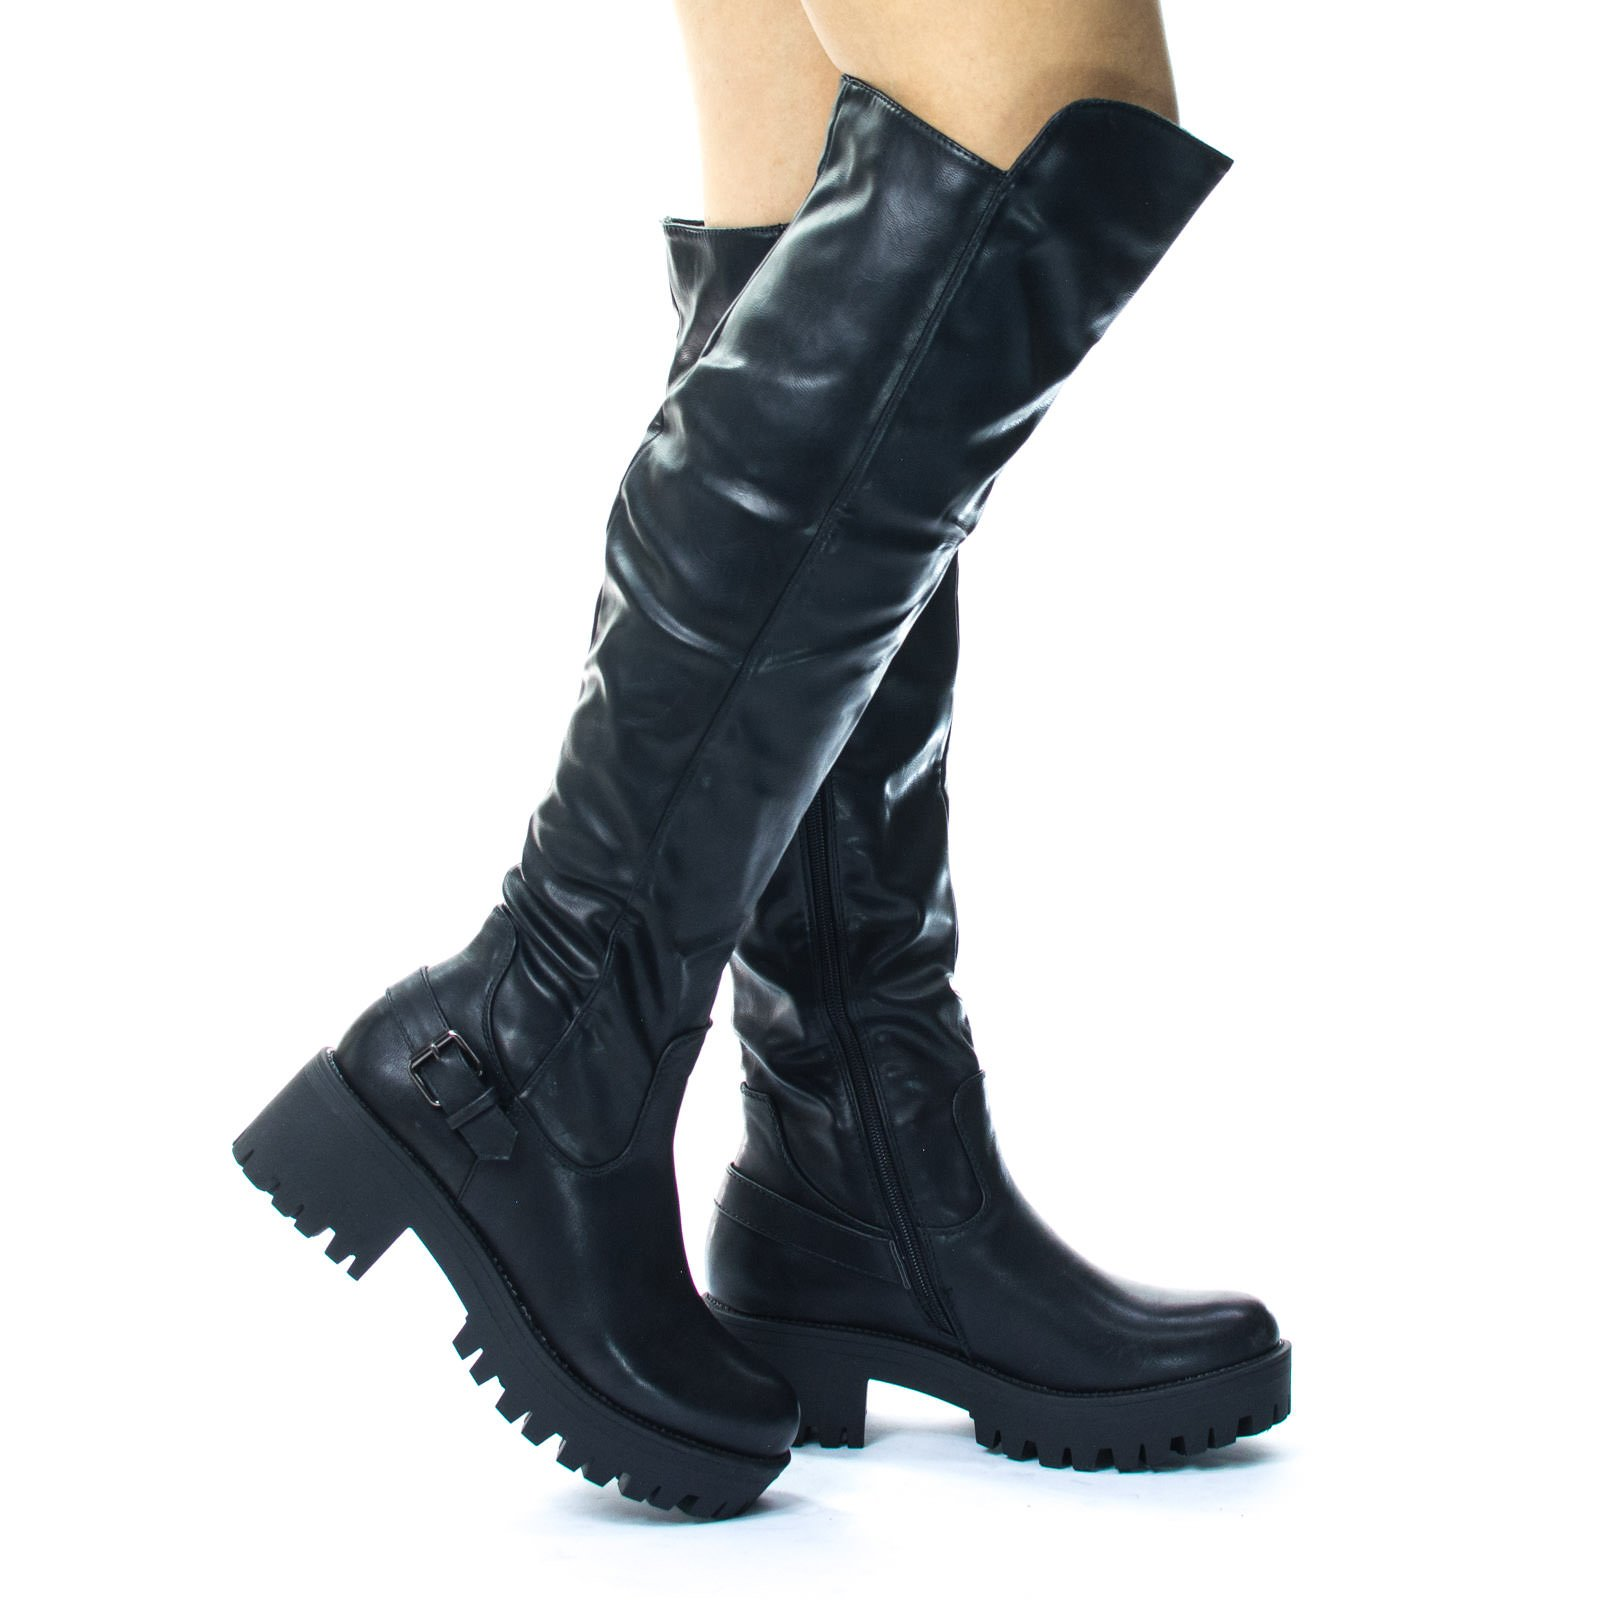 Lug Sole Over Knee Thigh High Belted Riding Boots. Platform Thread